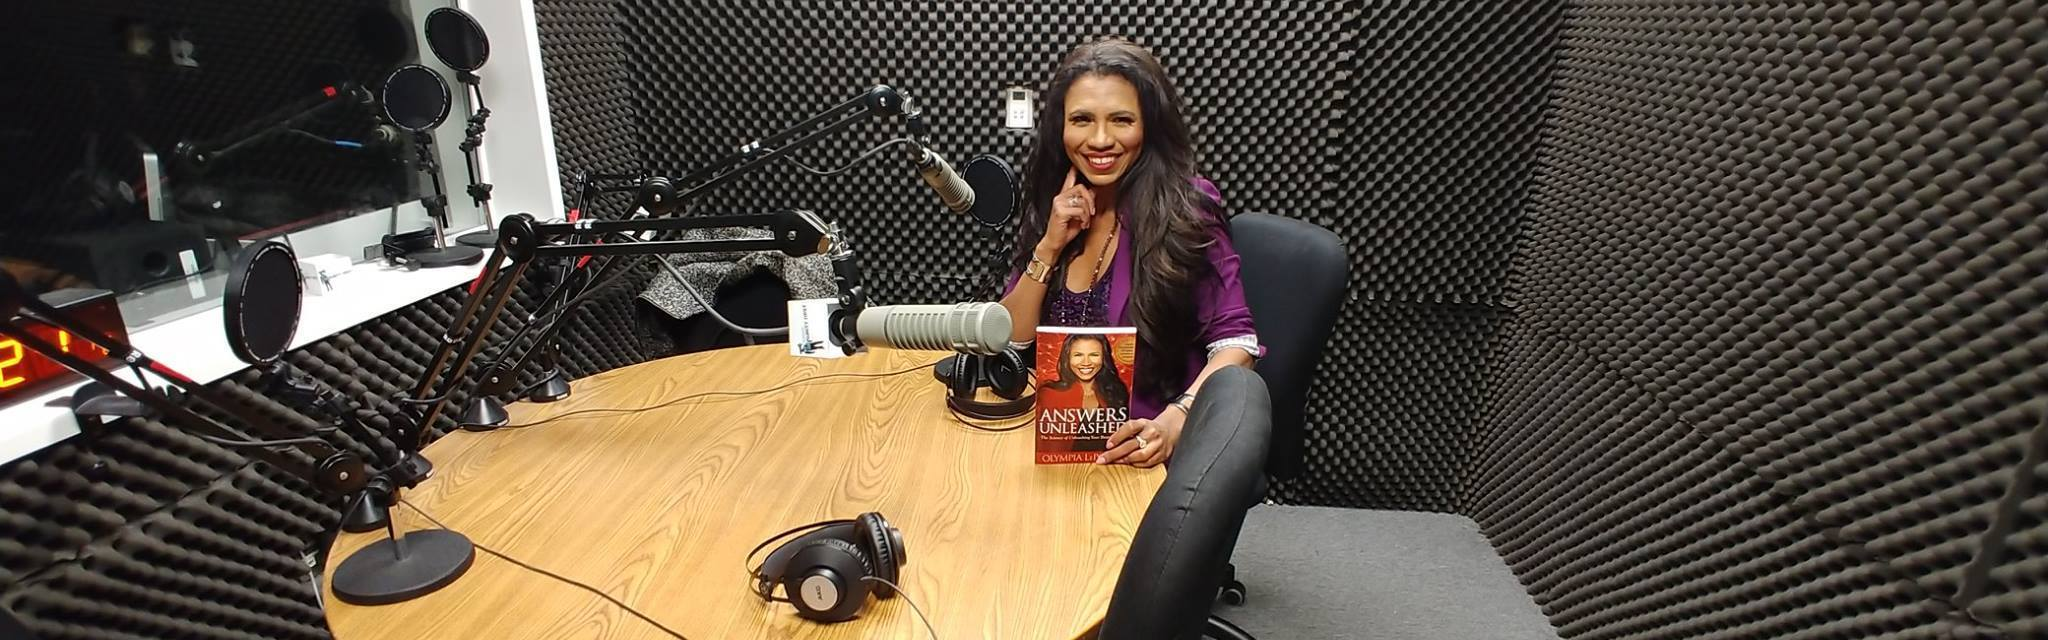 Olympia LePoint - Answers Unleashed Talk Show in the studio